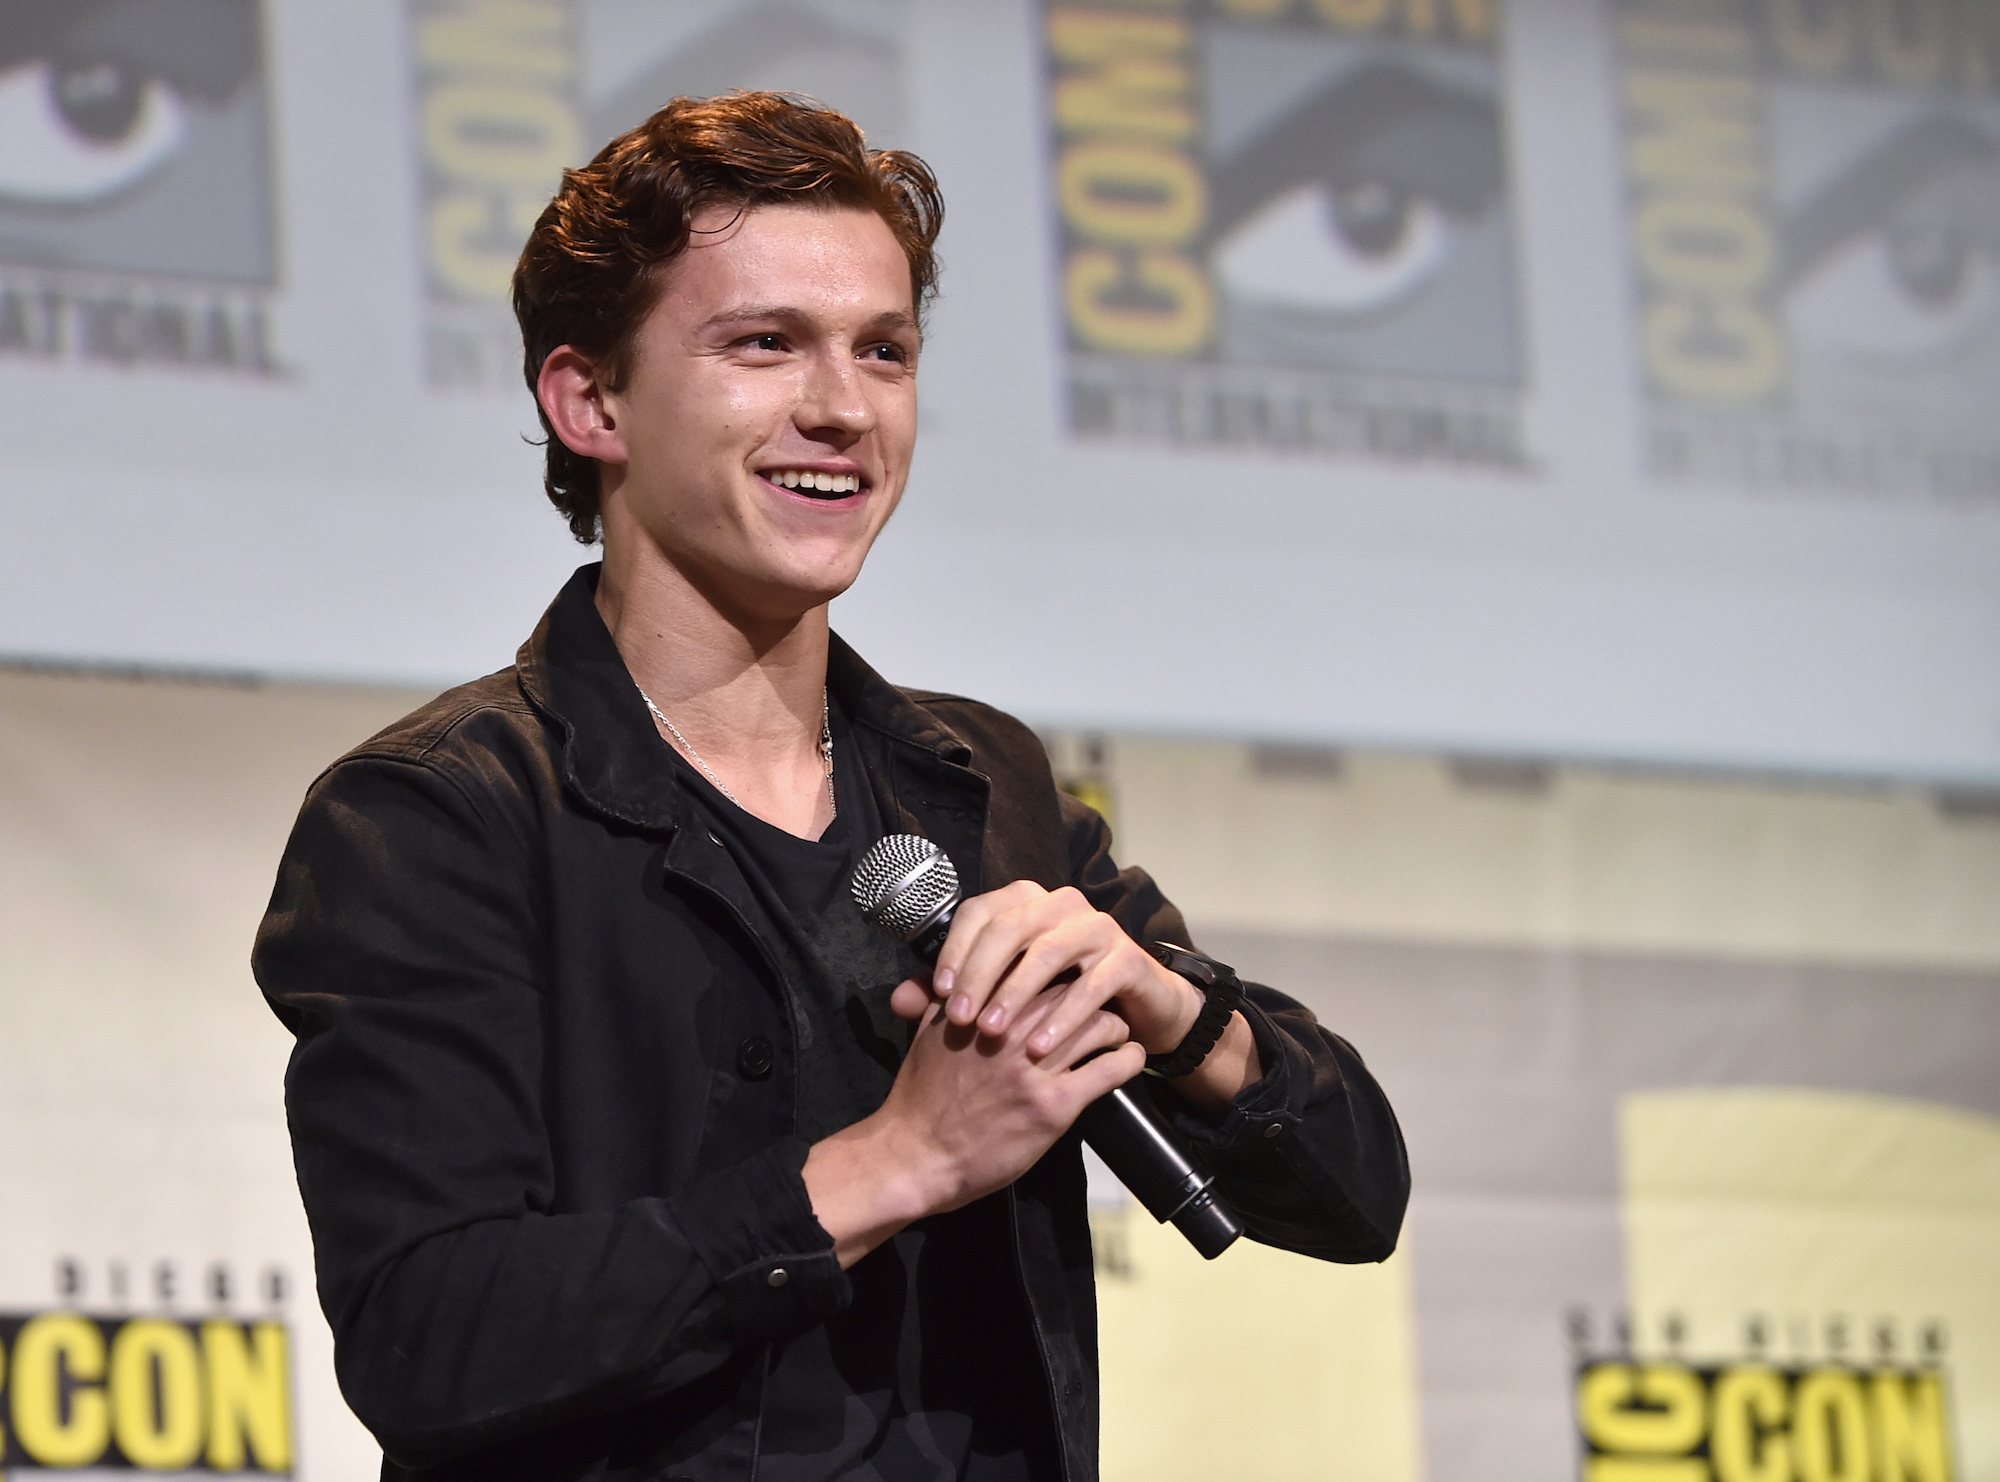 Tom Holland at the San Diego Comic-Con International 2016 on July 23, 2016